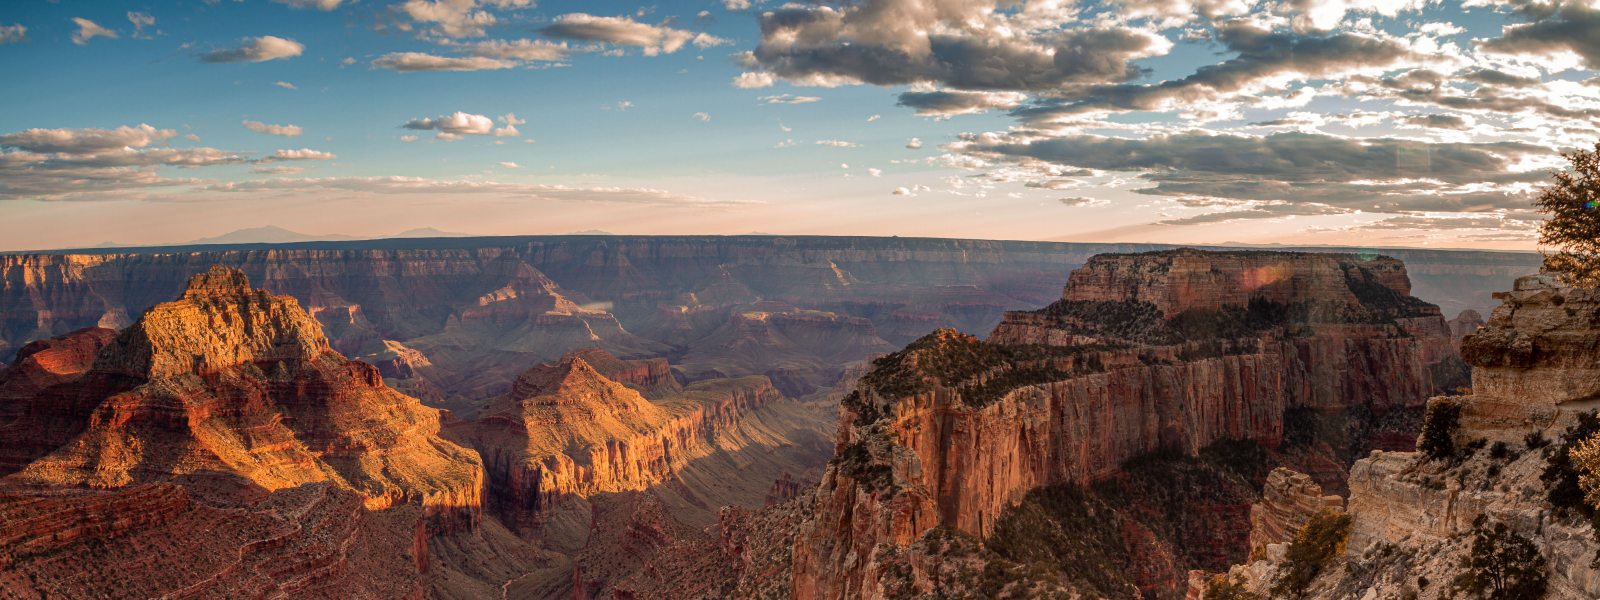 Panoramic view of the Grand Canyon at Sunset from the Northern Rim